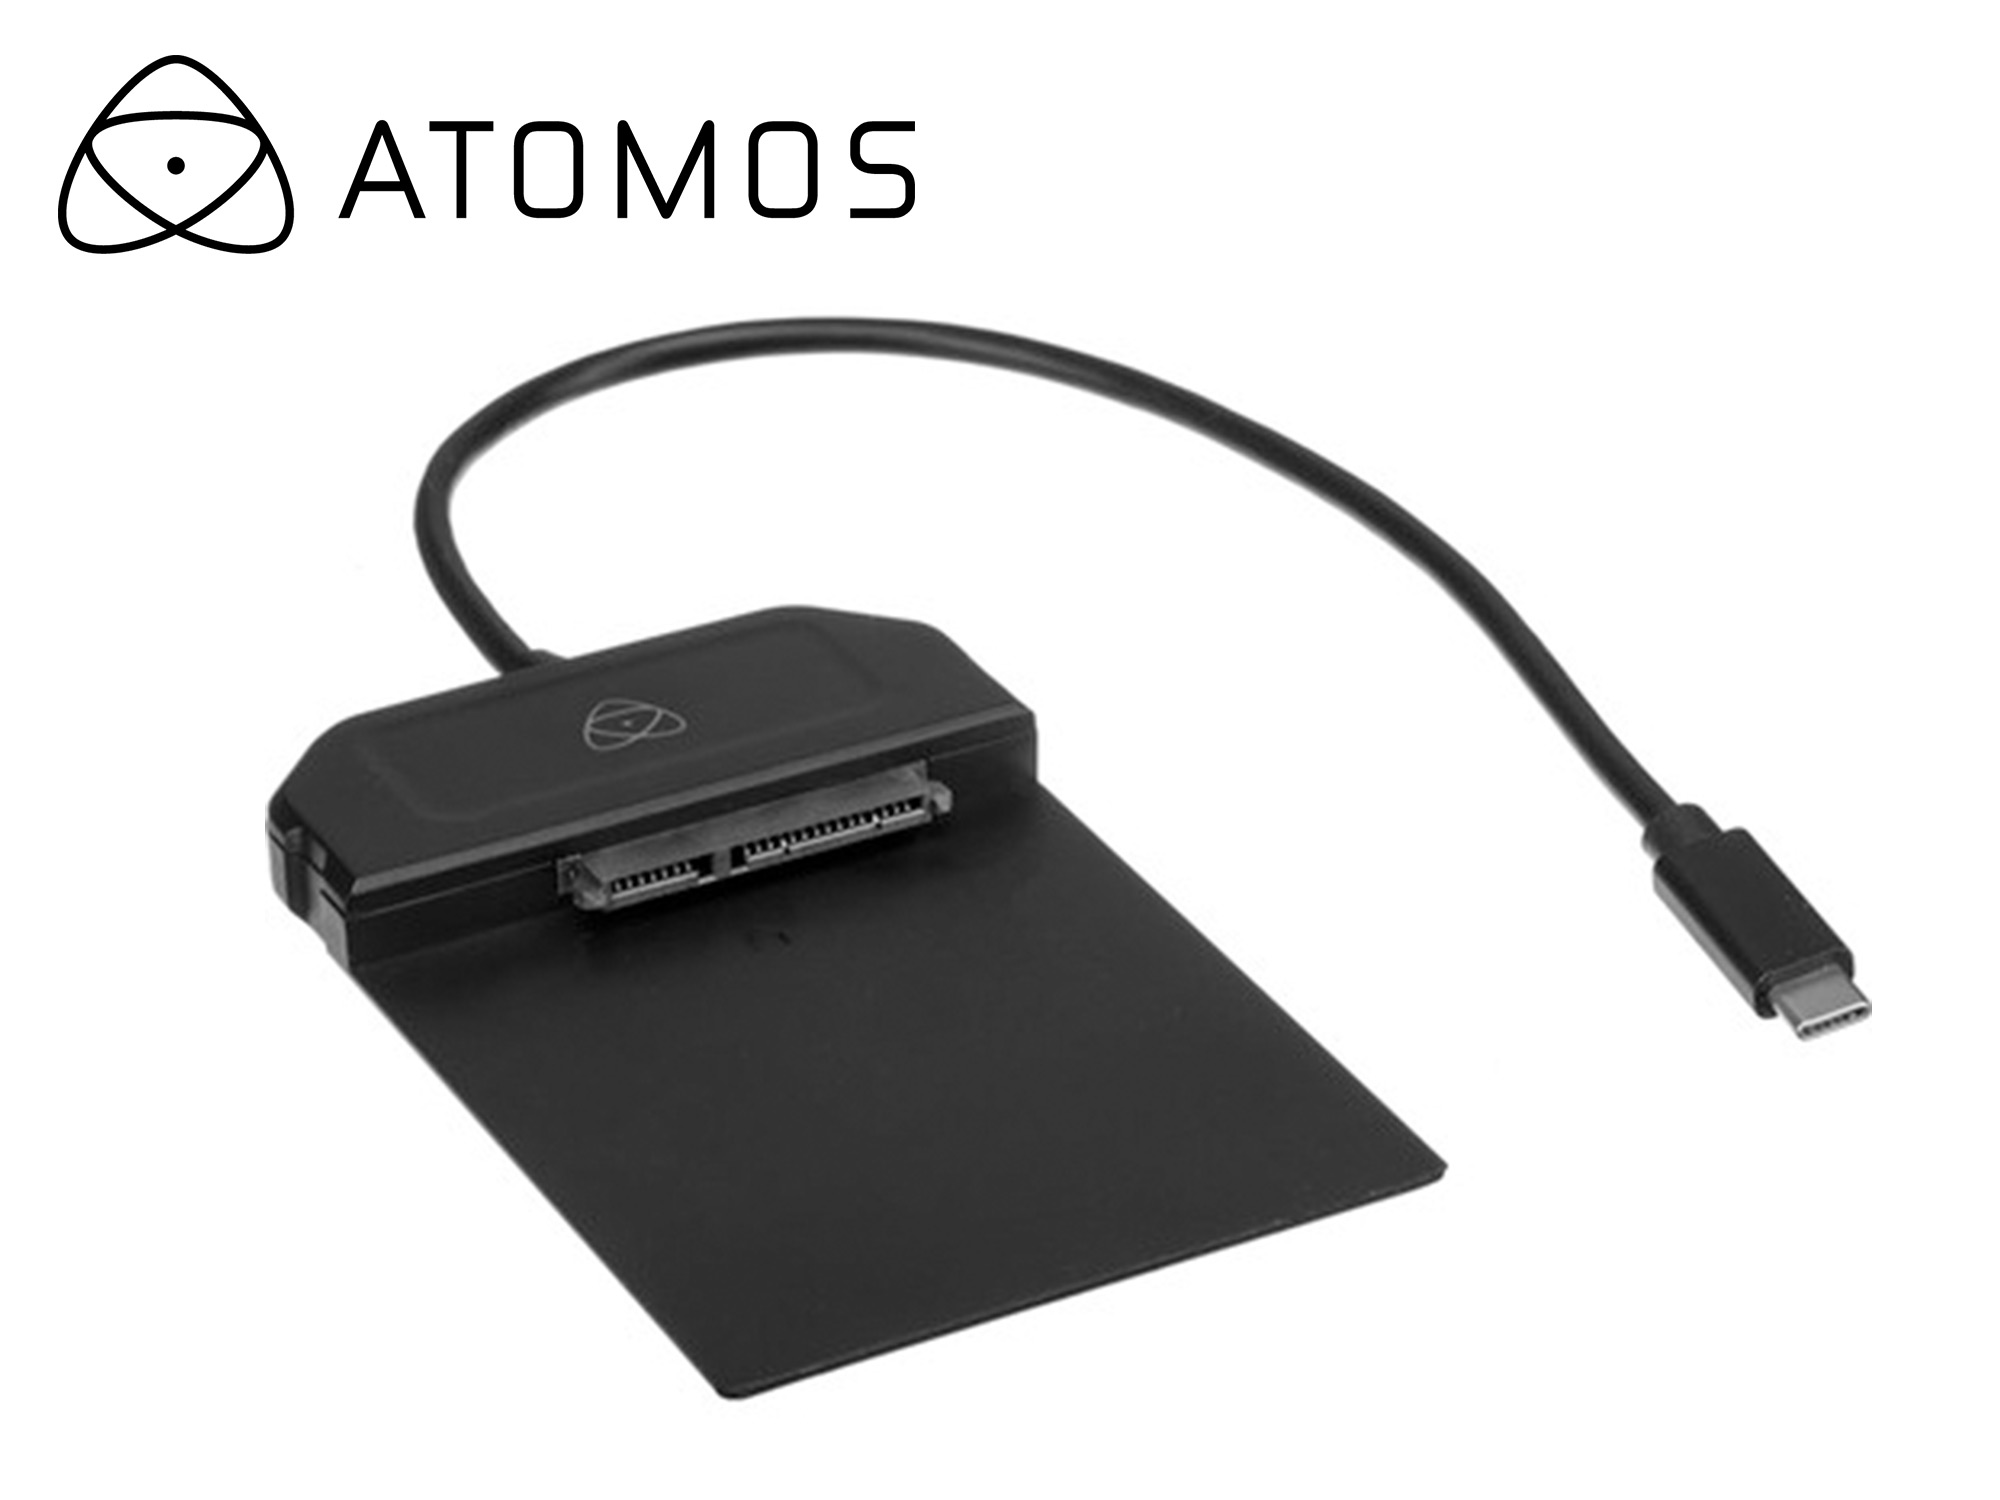 Atomos USB-C 3.1 Powered Docking Station